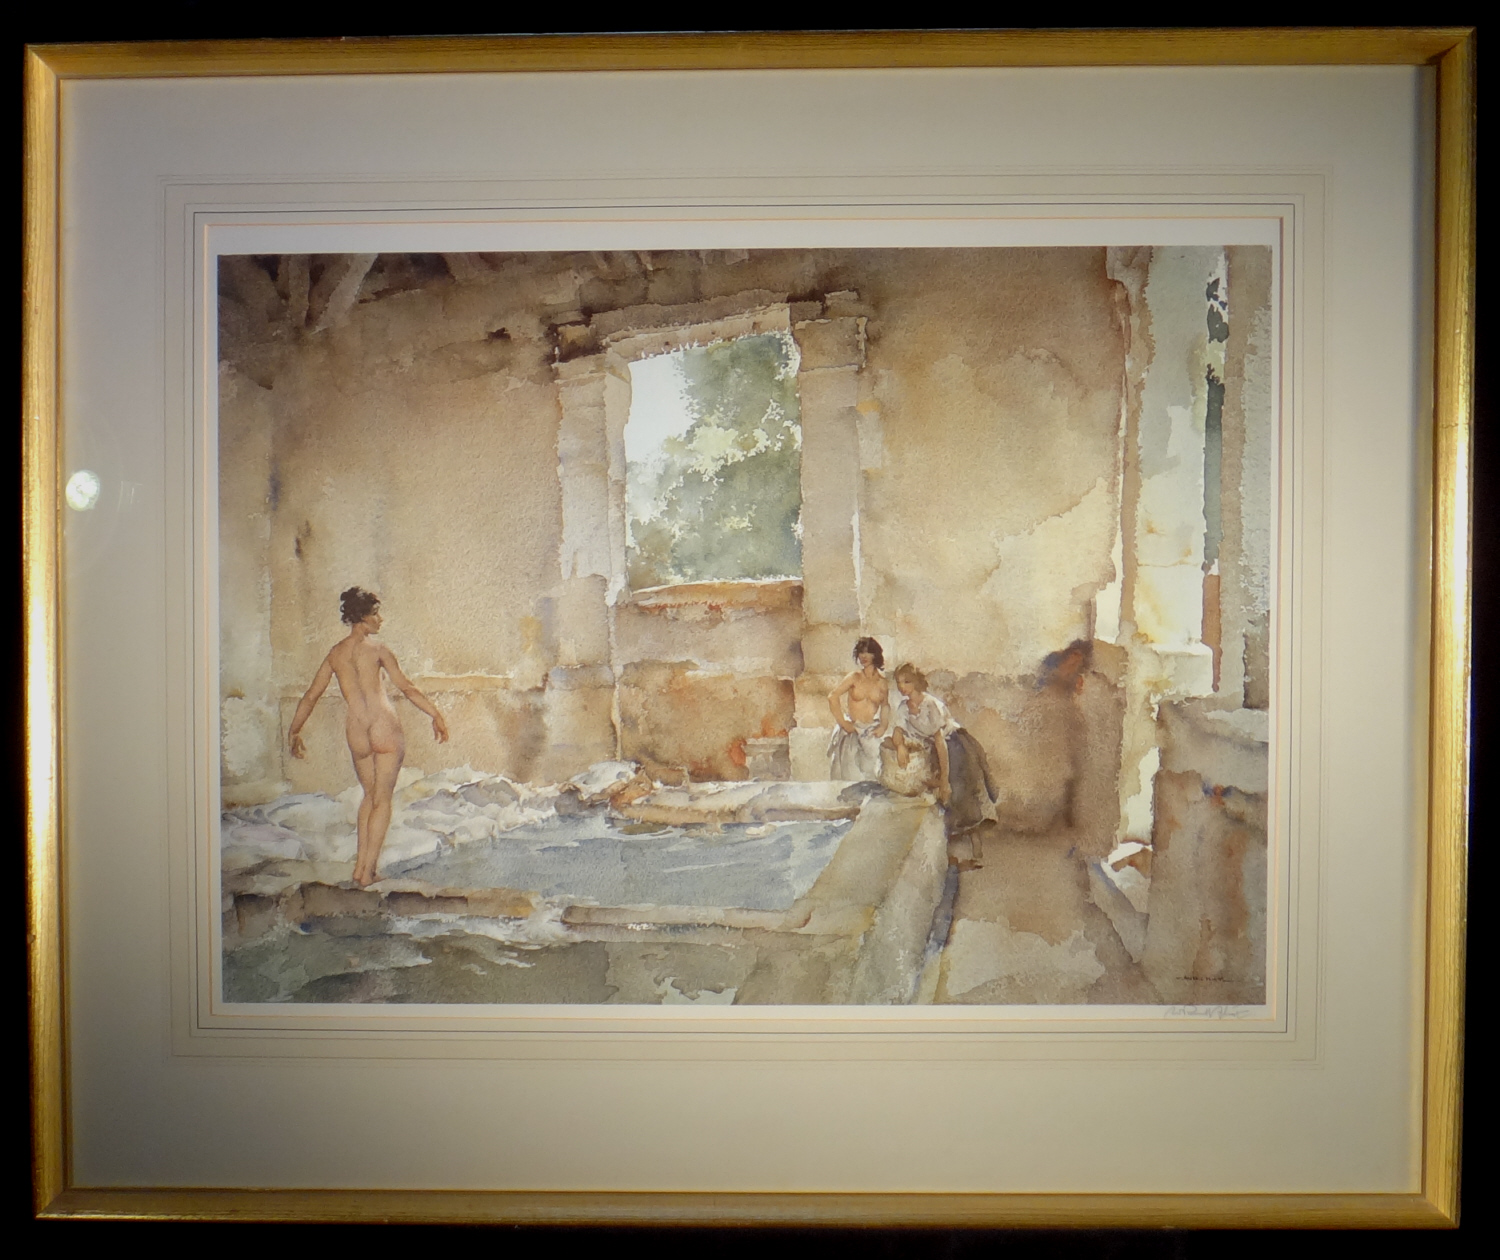 signed limited edition print, Lavoir la Bastide, sir william russell flint